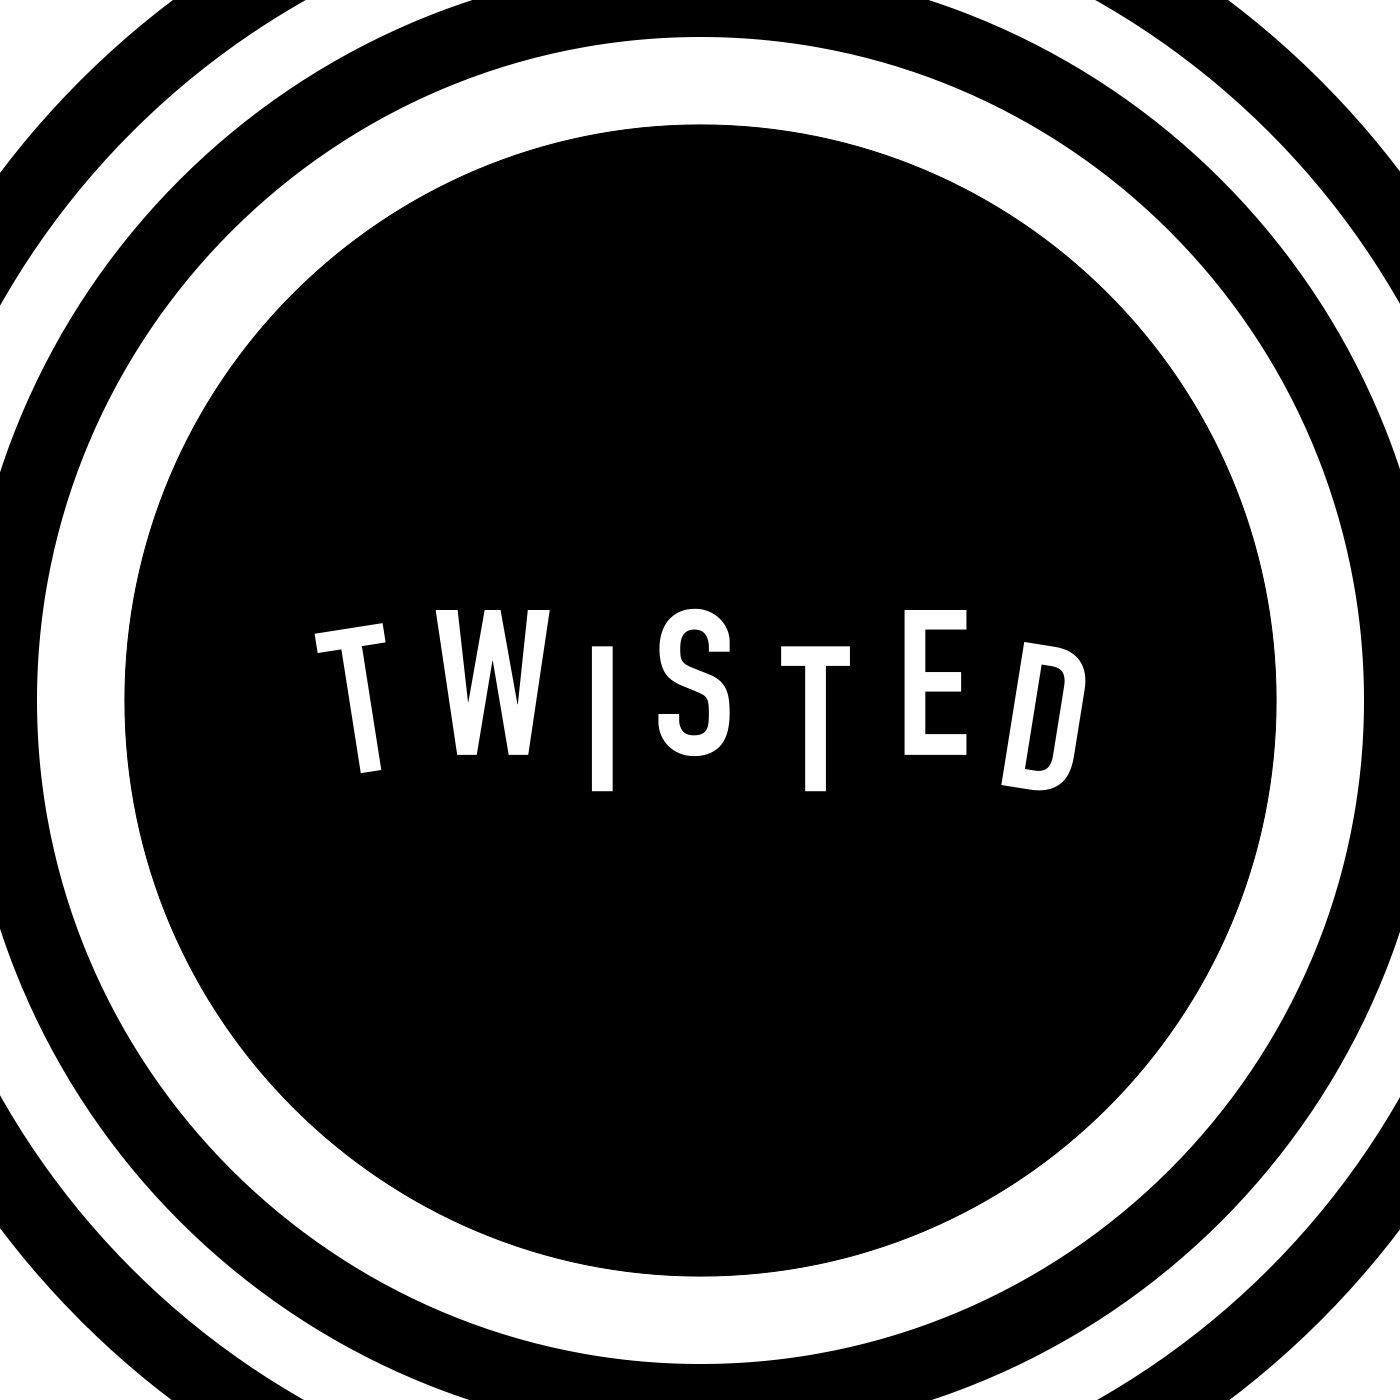 Twisted: It's Only Physical